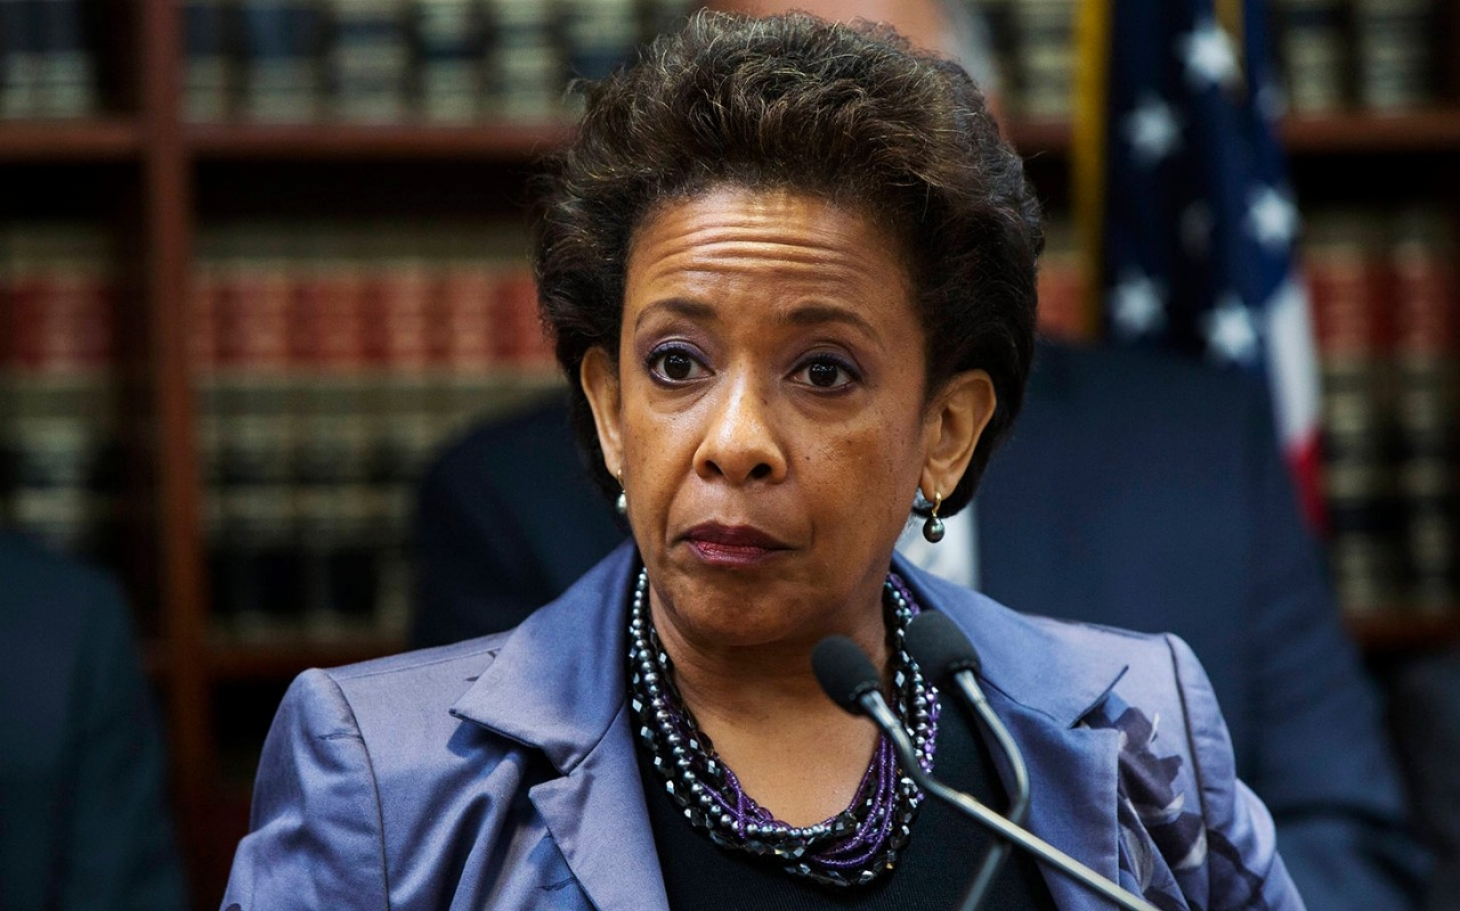 new york lawyer emerges as top candidate for us attorney general new york lawyer emerges as top candidate for us attorney general al jazeera america